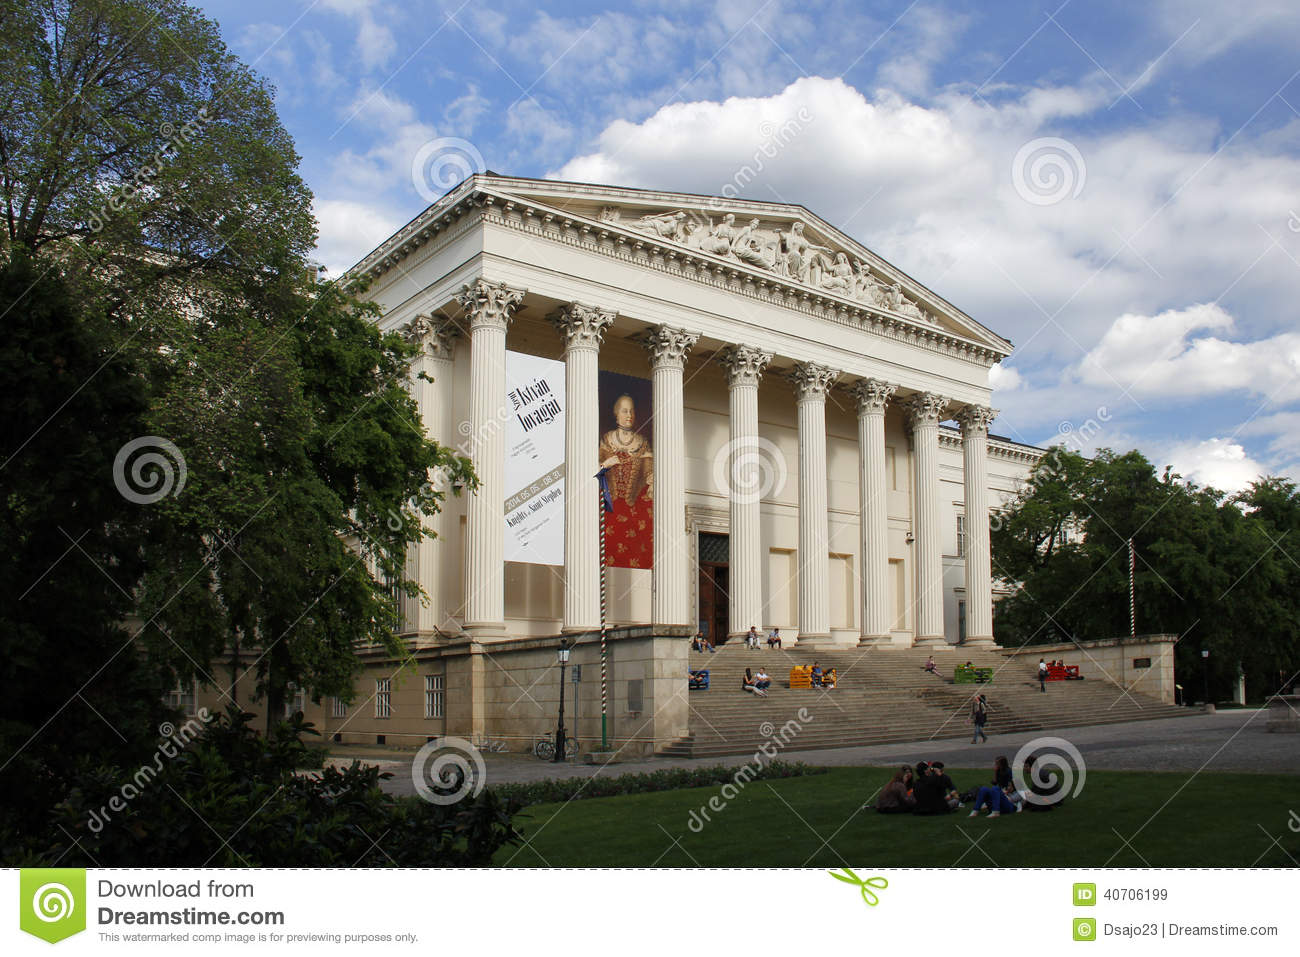 BUDAPEST / HUNGARY - MAY 9: Hungarian National Museum, on May 9, 2014 in Budapest/Hungary